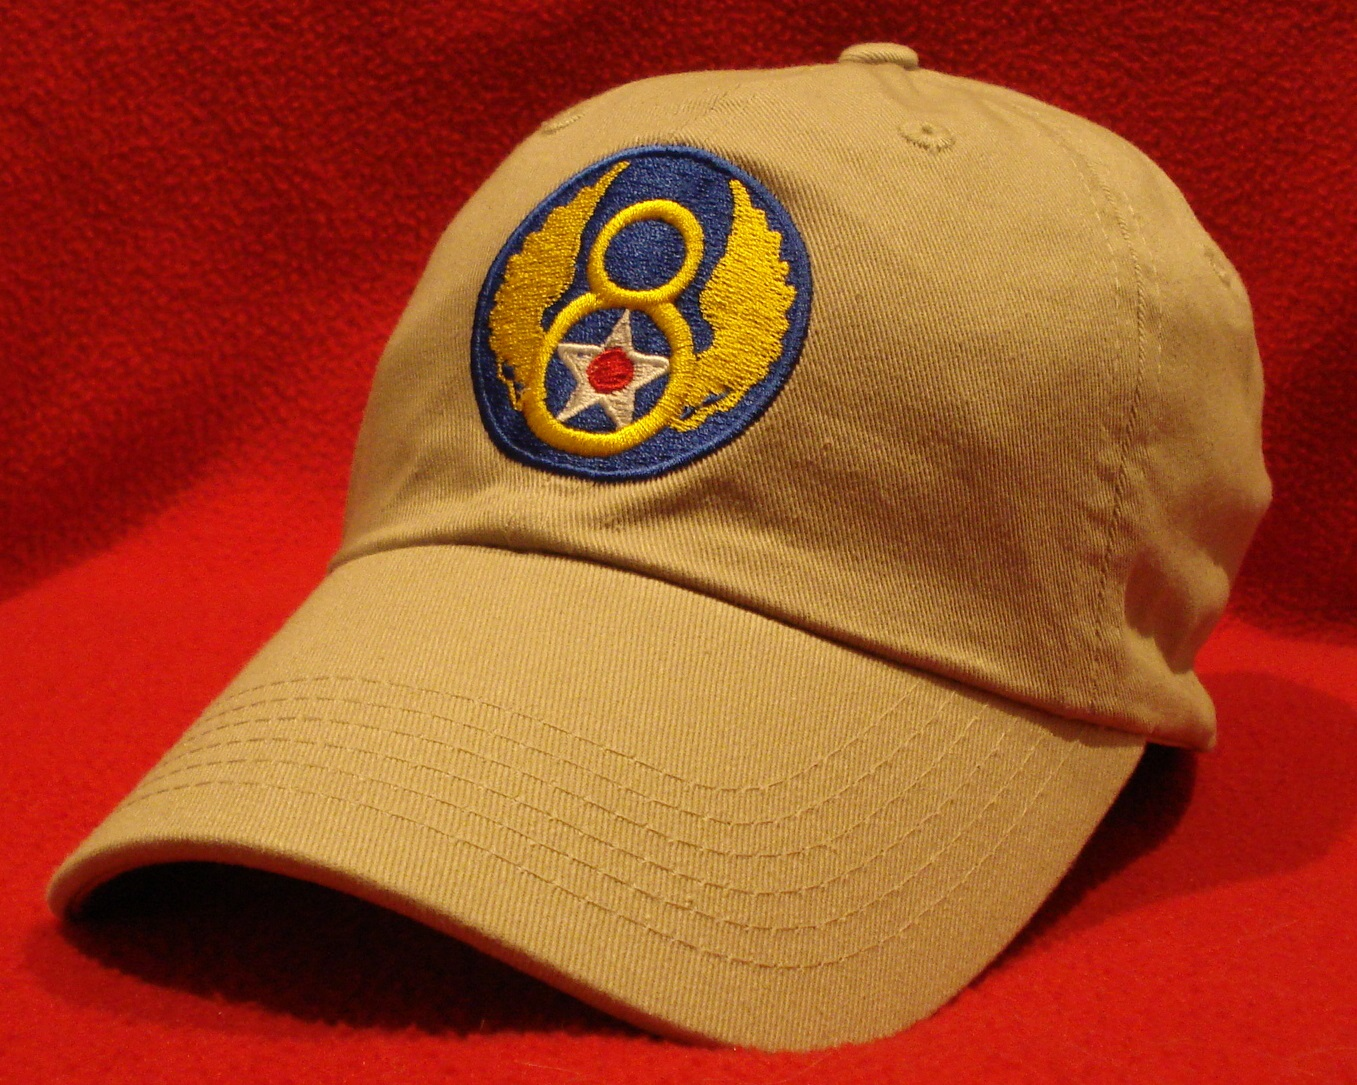 Pilot Ball Caps sells Air Force Maintenenace and Crew Chief Hats e7f6a055b8ac